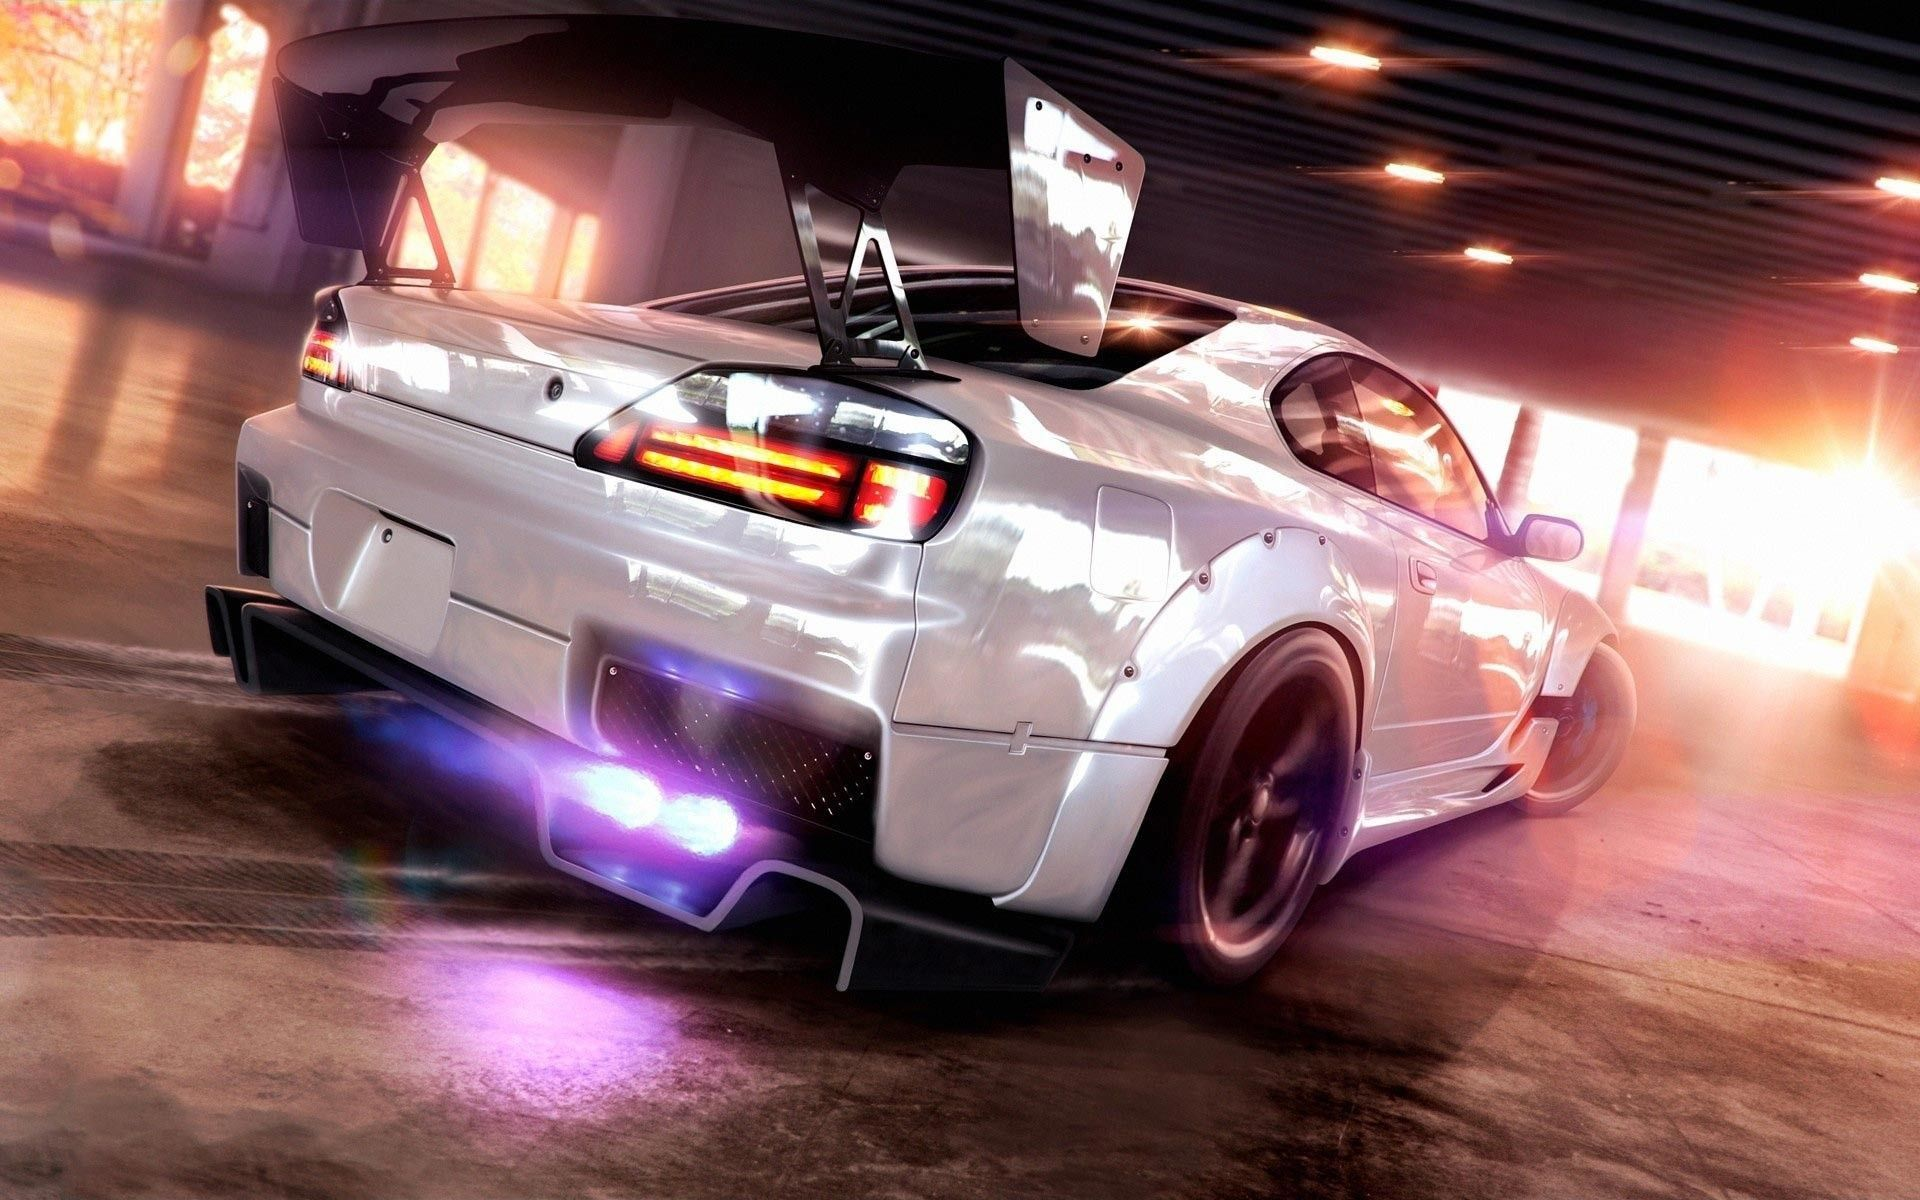 Toyota Supra Drifting Hd Wallpaper In 2020 With Images Car